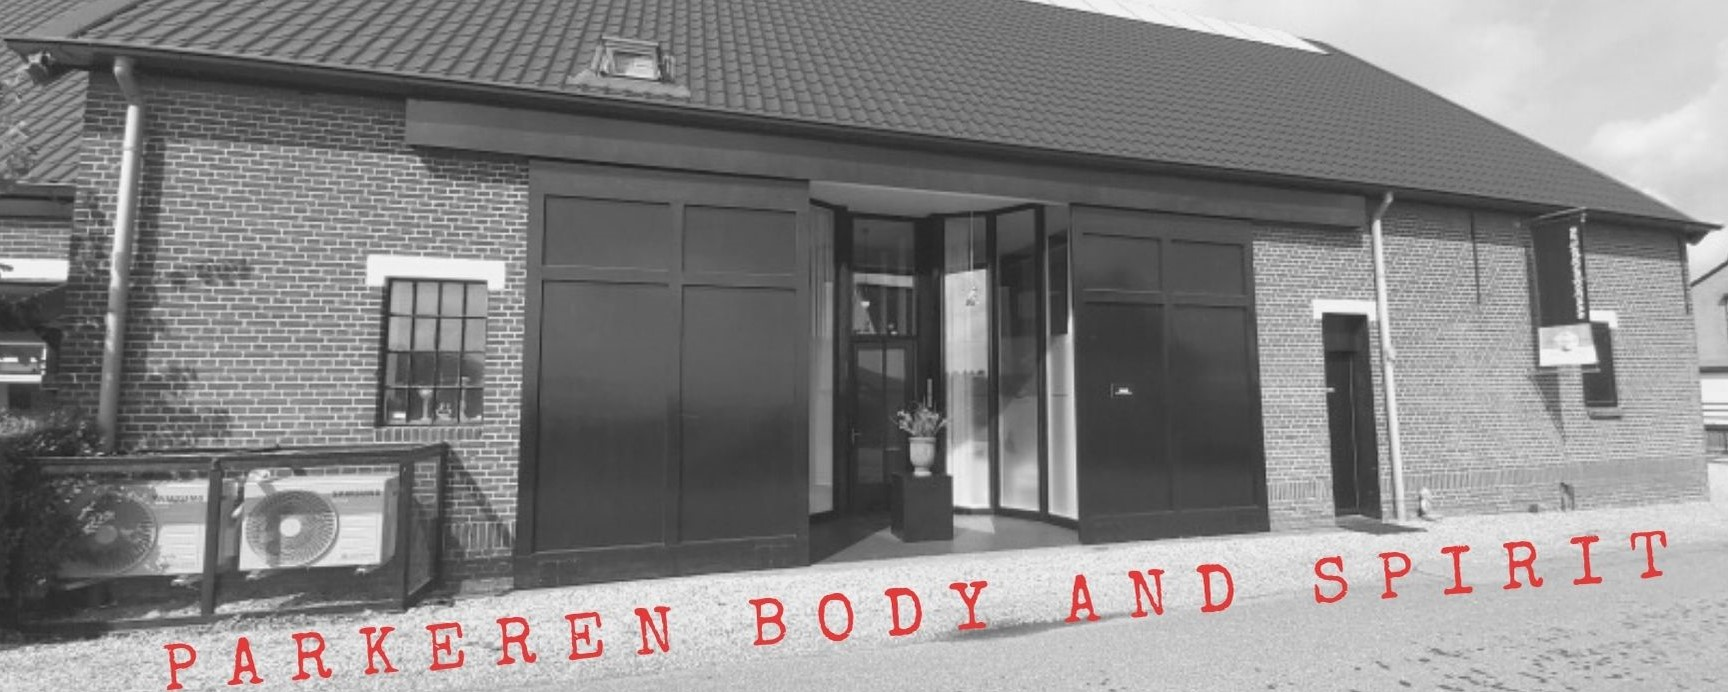 PARKEREN BODY AND SPIRIT